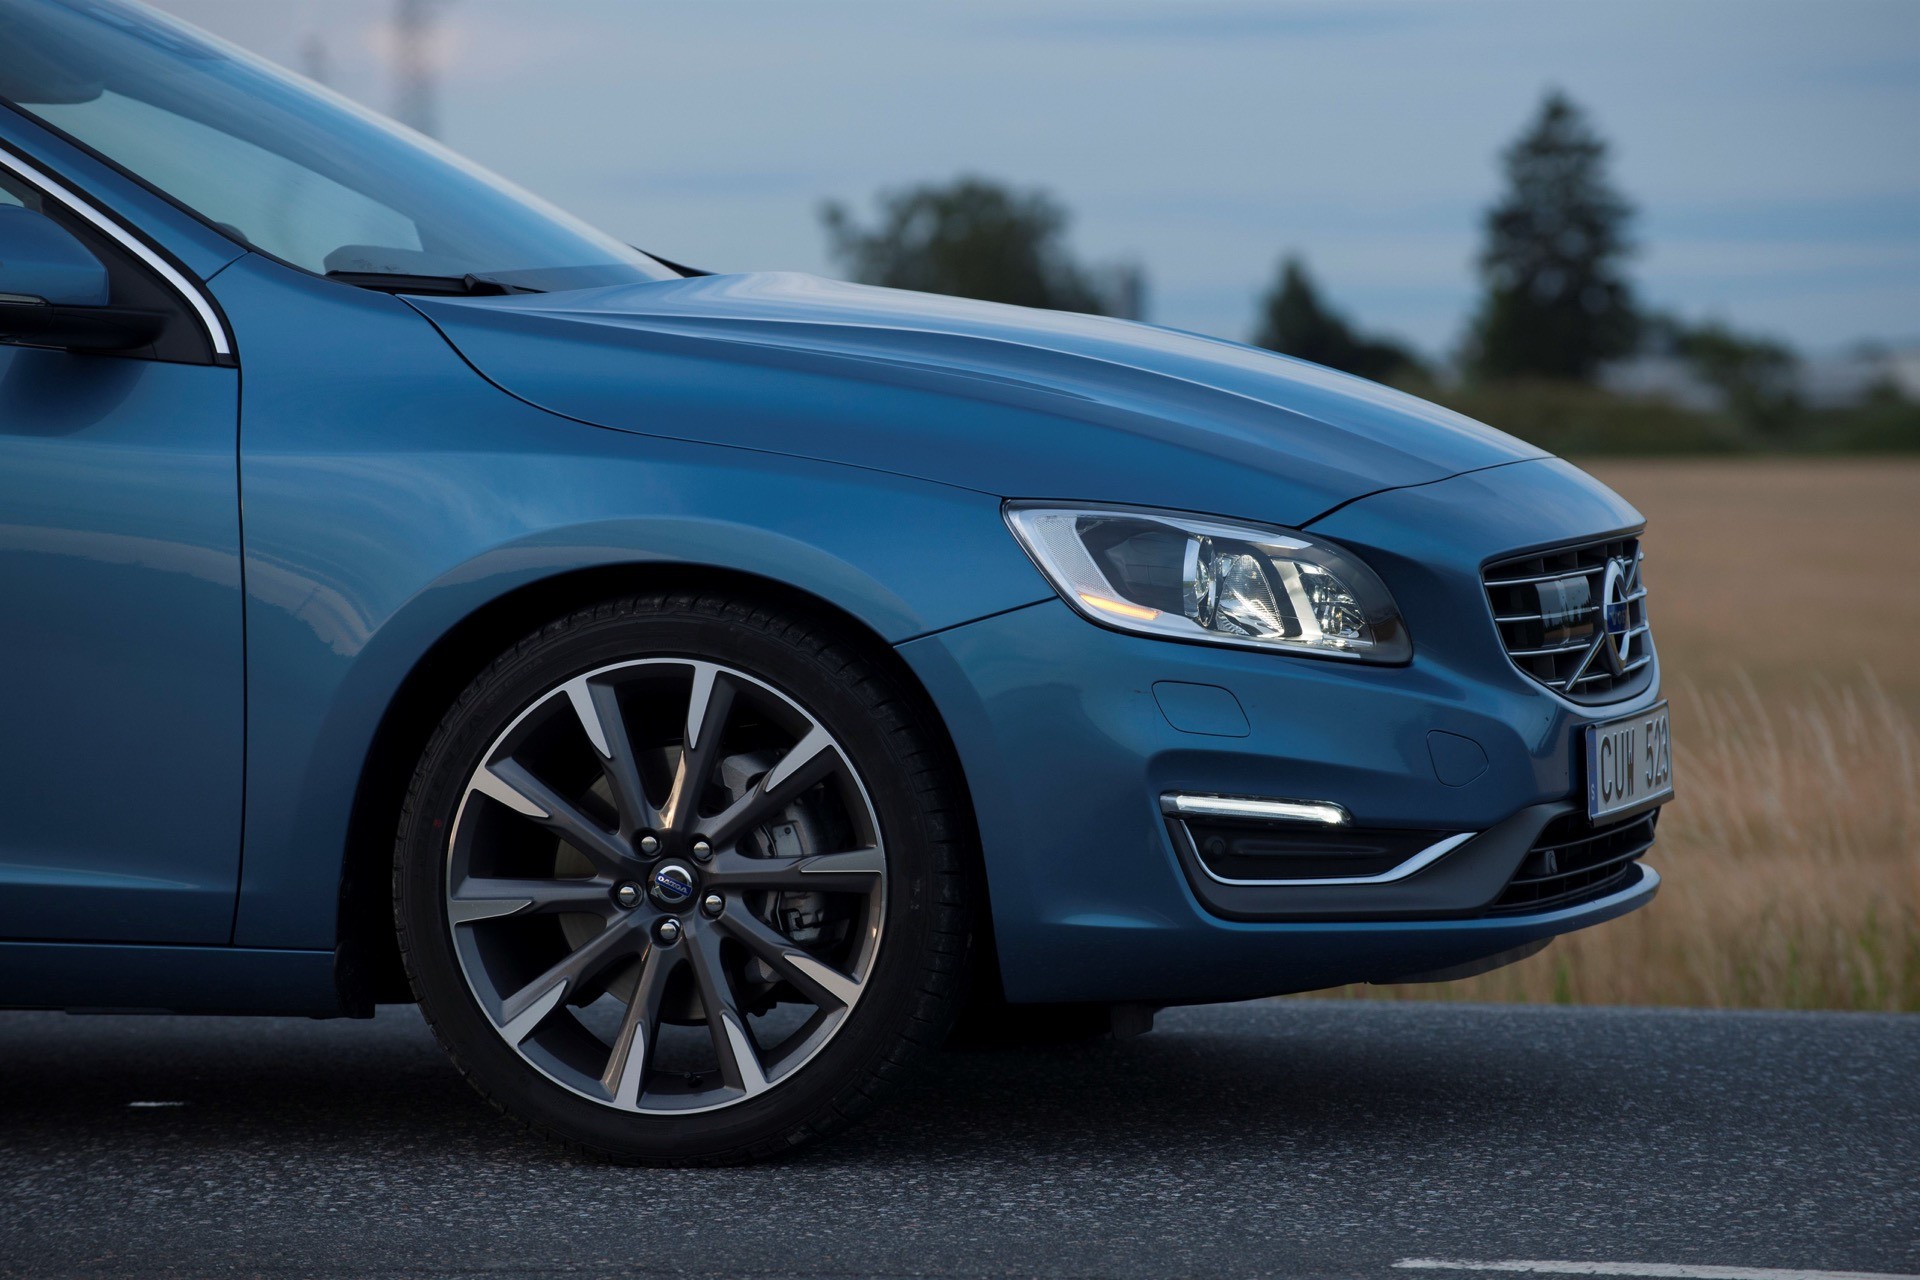 Volvo S60 -  2013, 2014, 2014 S60, Detail, Exterior, Images, S60, Volvo